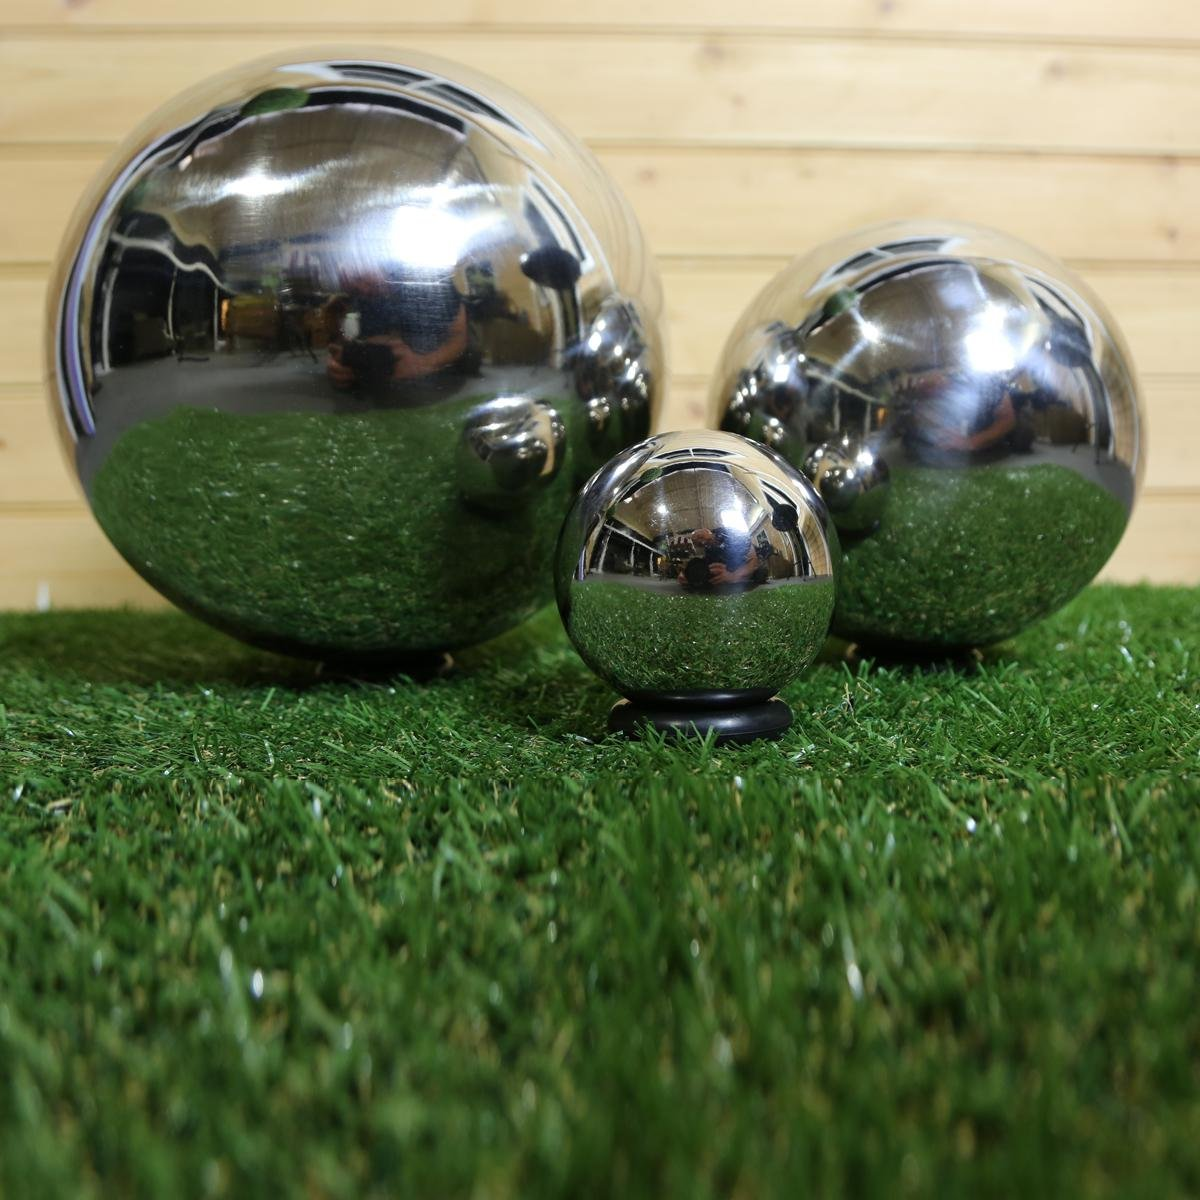 40cm Stainless Steel Sphere Decorative Garden Ornament: Amazon.co.uk ...